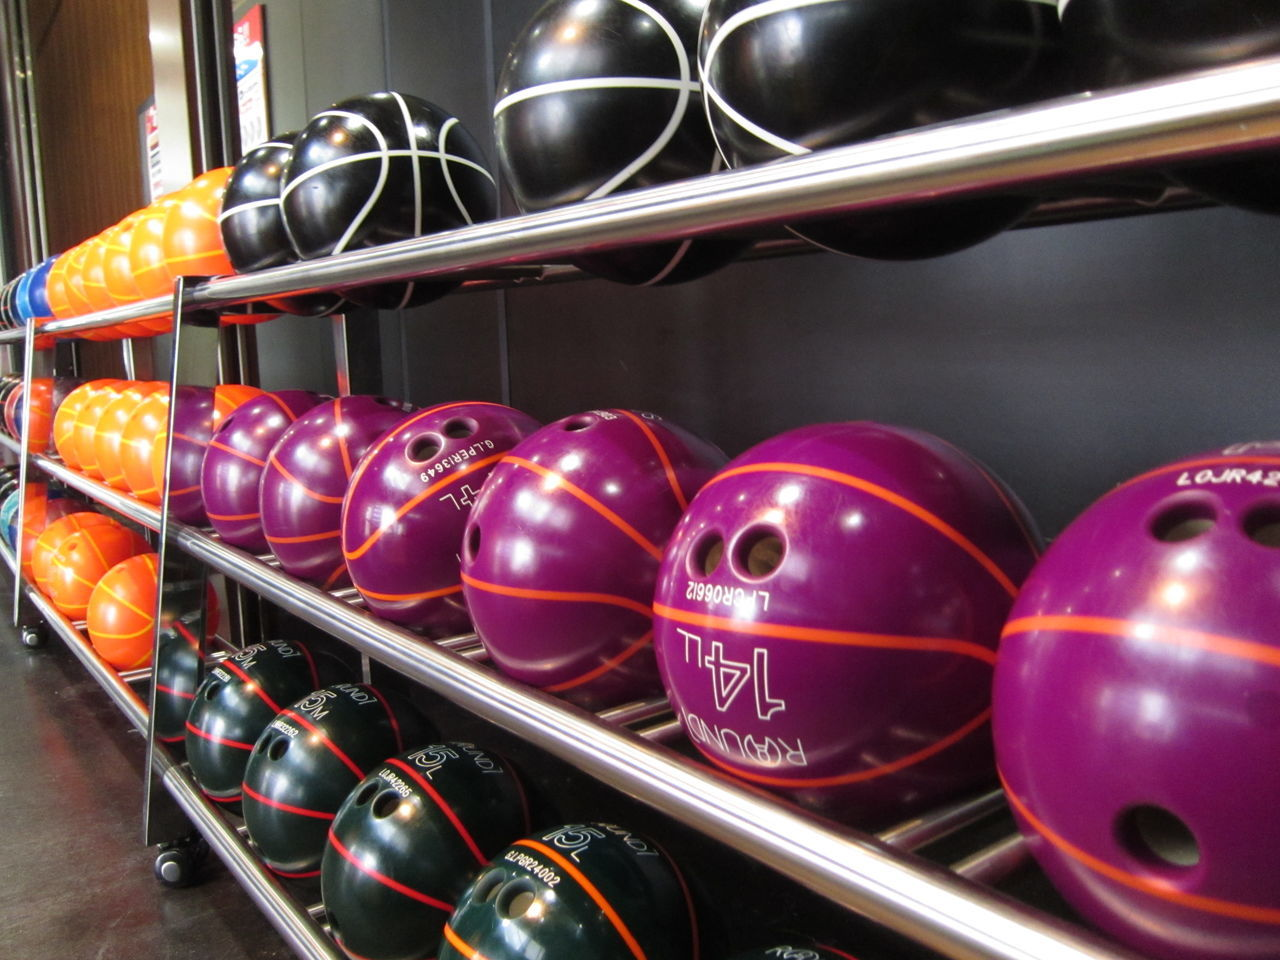 Bowling balls Balls Ballsport Bowling Bowling Alley Bowling Balls Close-up Hobbies Hobby Indoors  Multi Colored No People Rows Rows Of Things Shelf Sports